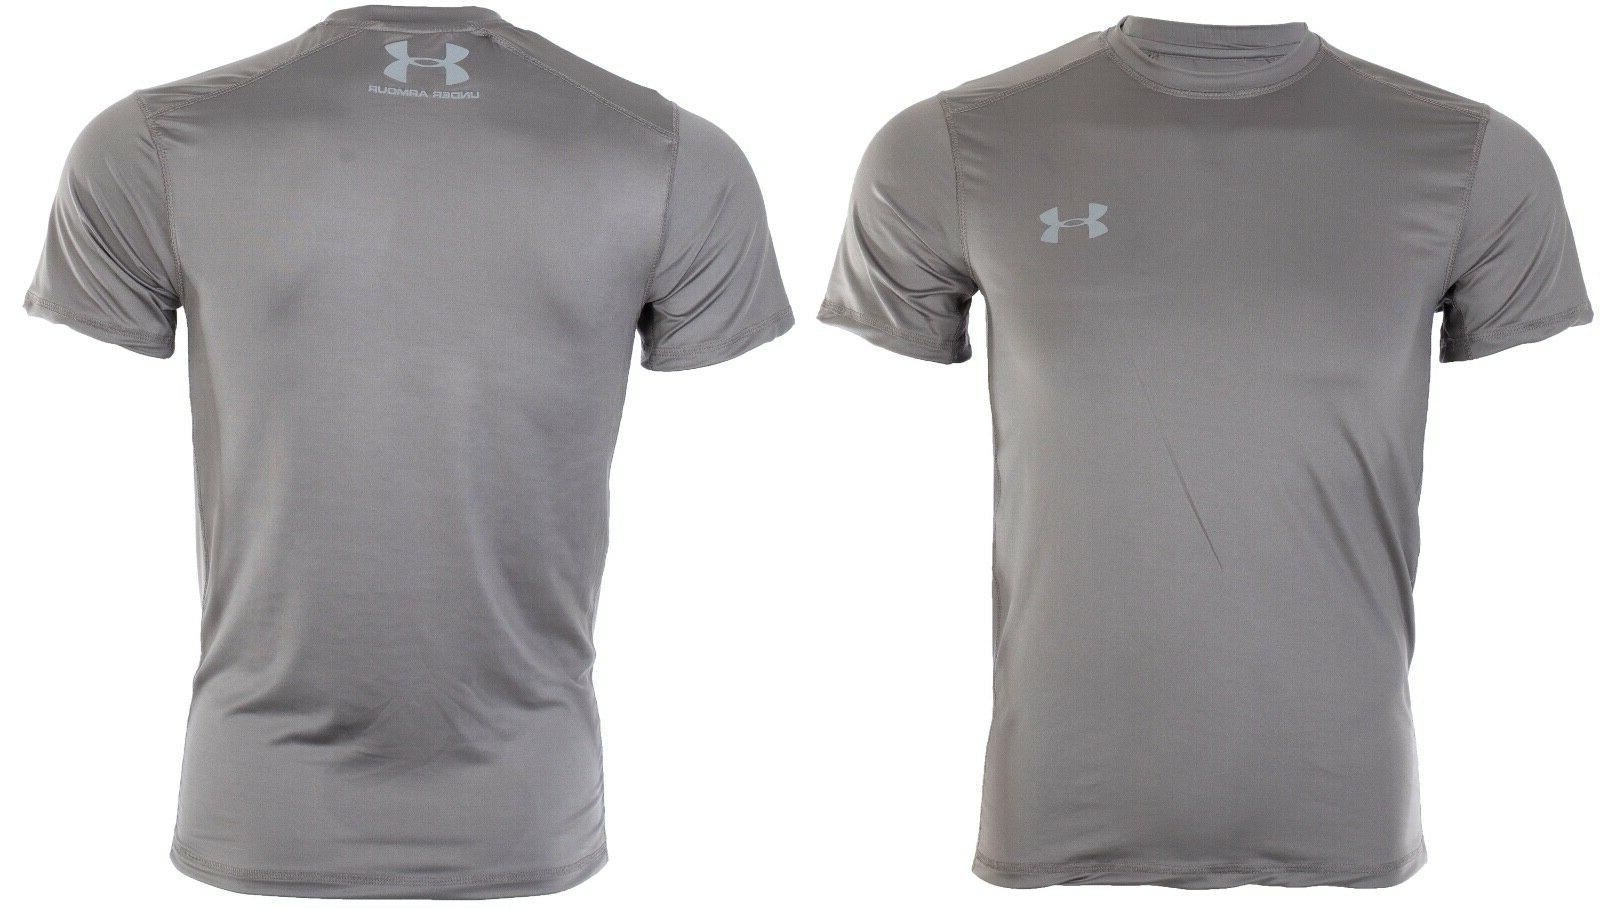 UNDER Mens T-Shirt SOLID CHARCOAL Semi Fitted $40